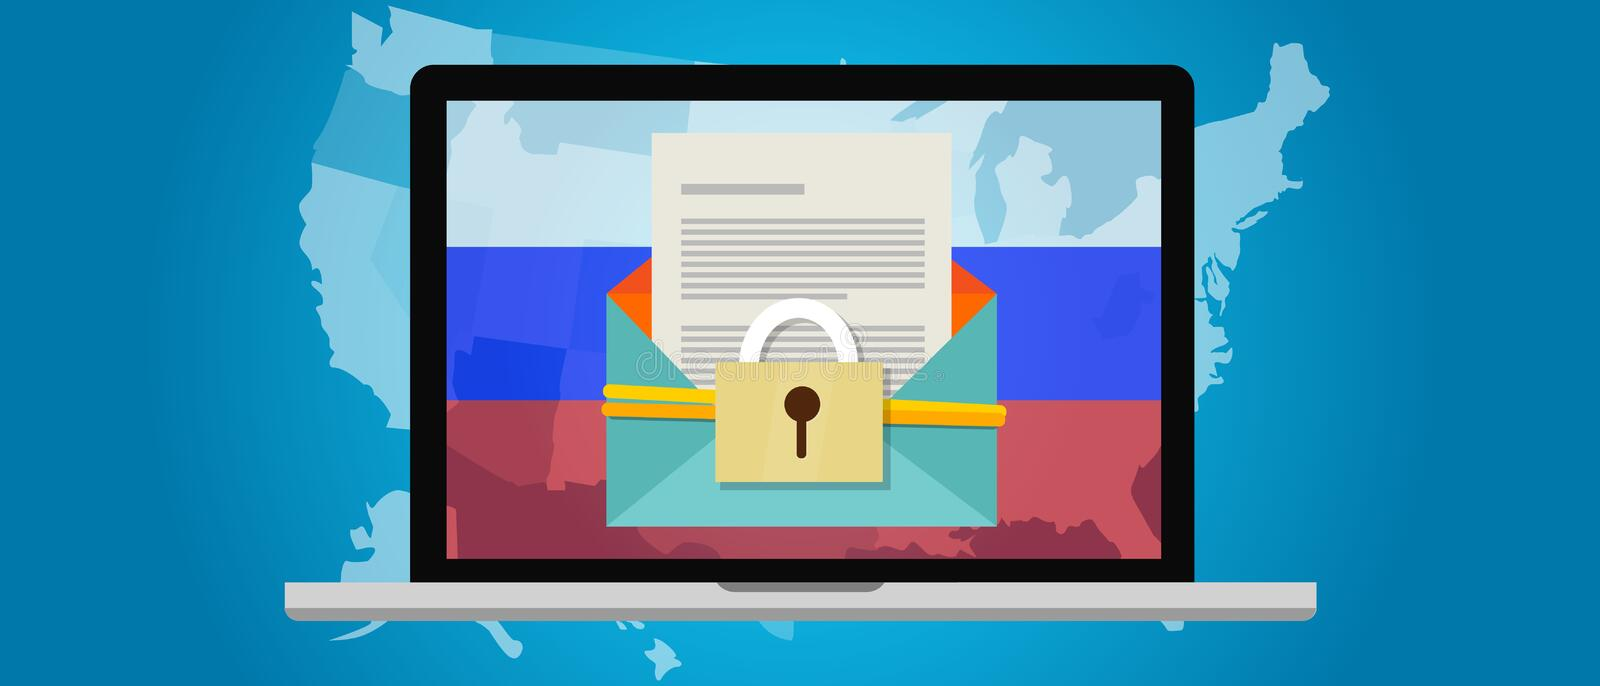 Russia hacking US election America DNC vector illustration